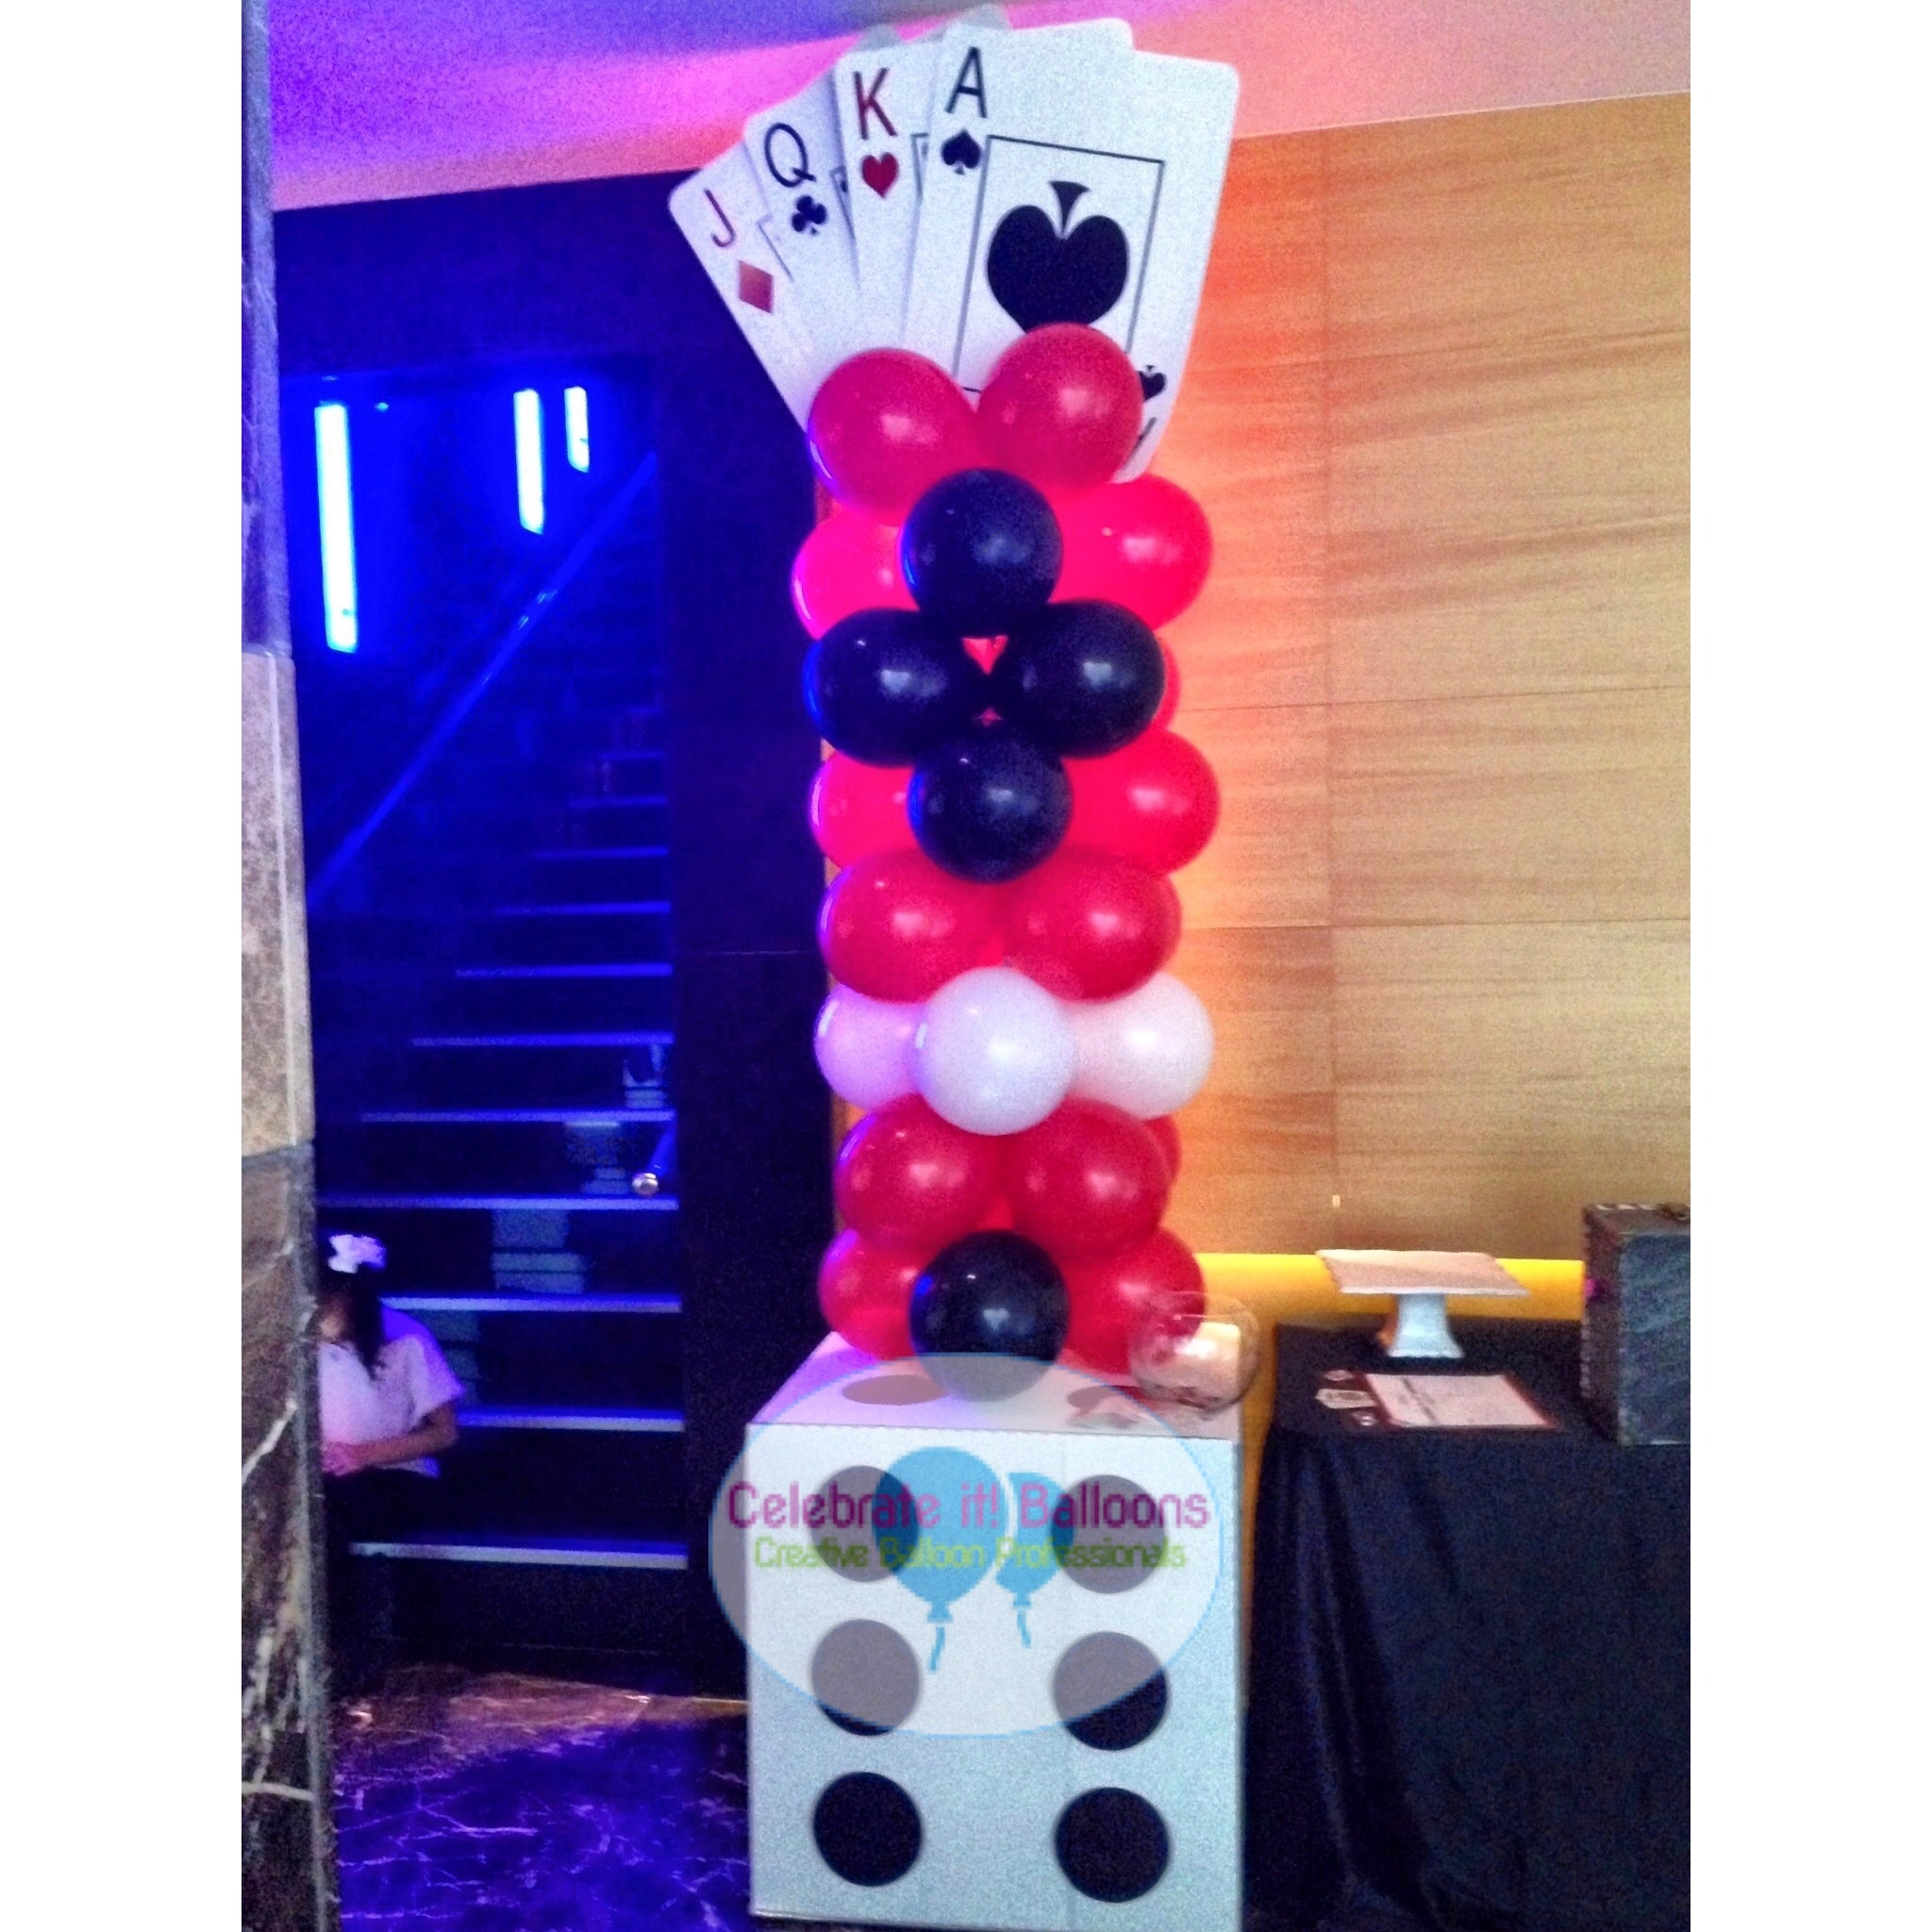 Casino theme balloon column with dice base in red, black and white